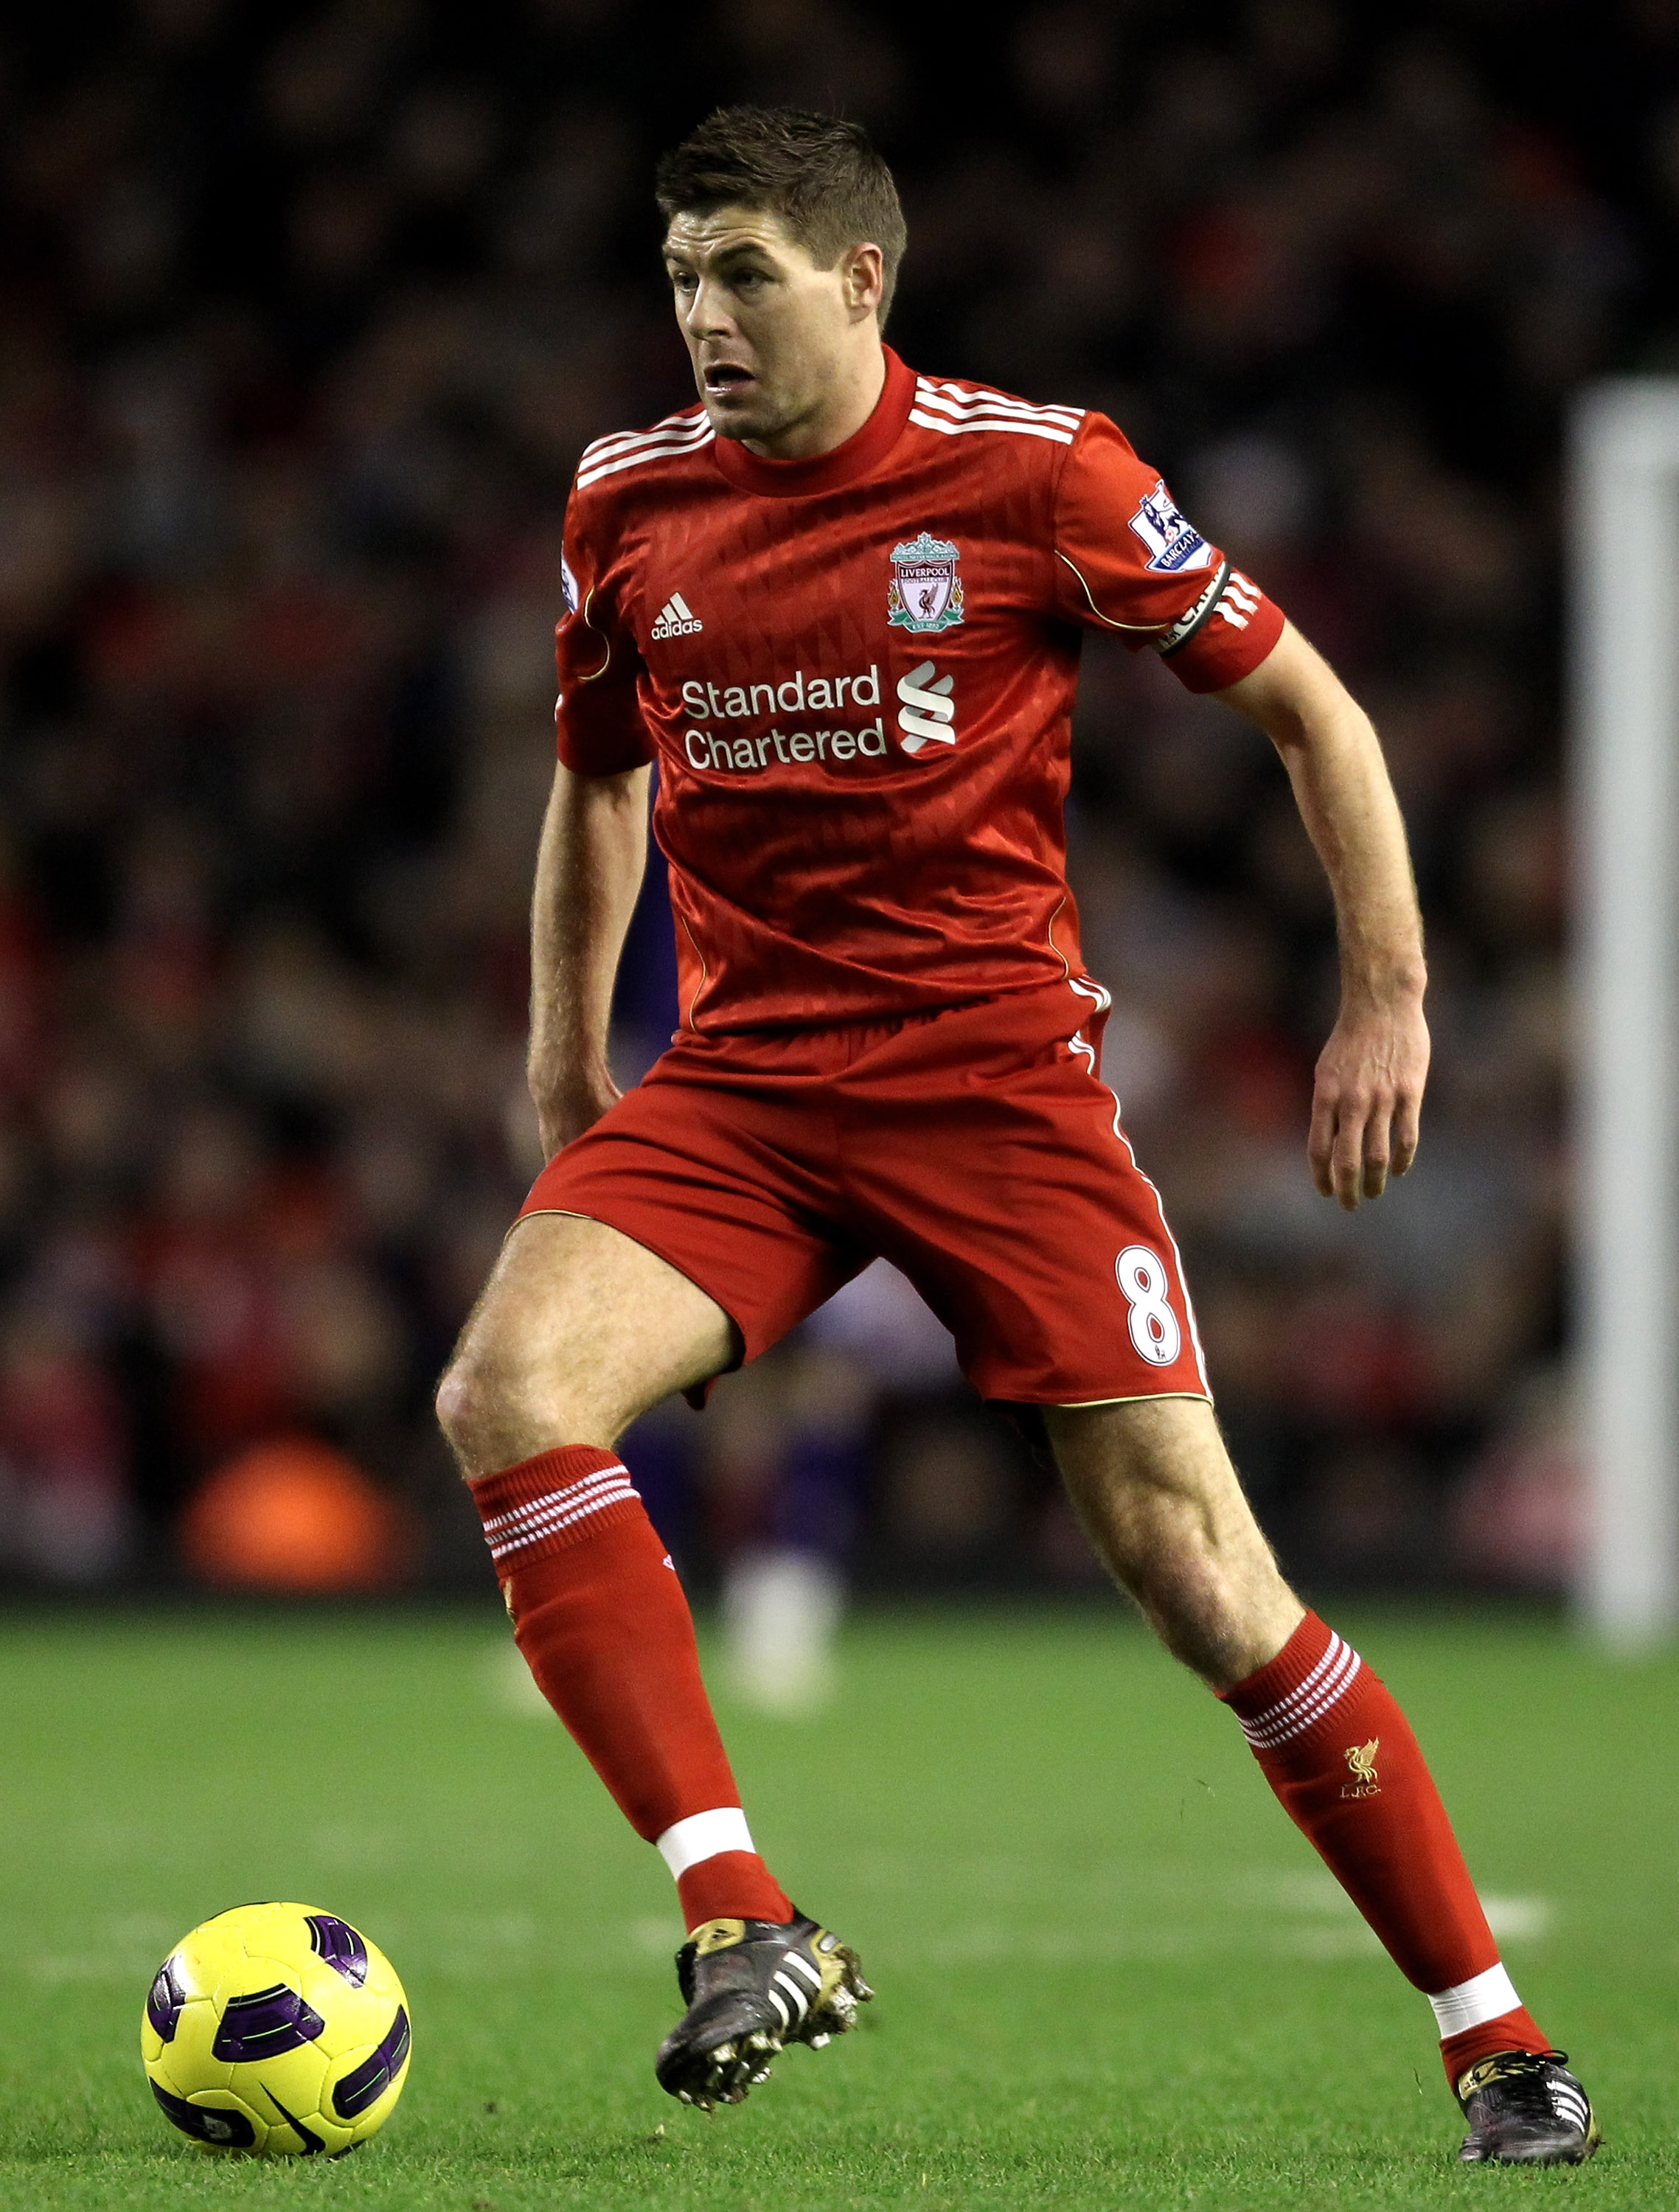 LIVERPOOL, ENGLAND - JANUARY 26:  Steven Gerrard of Liverpool in action during the Barclays Premier League match between Liverpool and Fulham at Anfield on January 26, 2011 in Liverpool, England. (Photo by Alex Livesey/Getty Images)